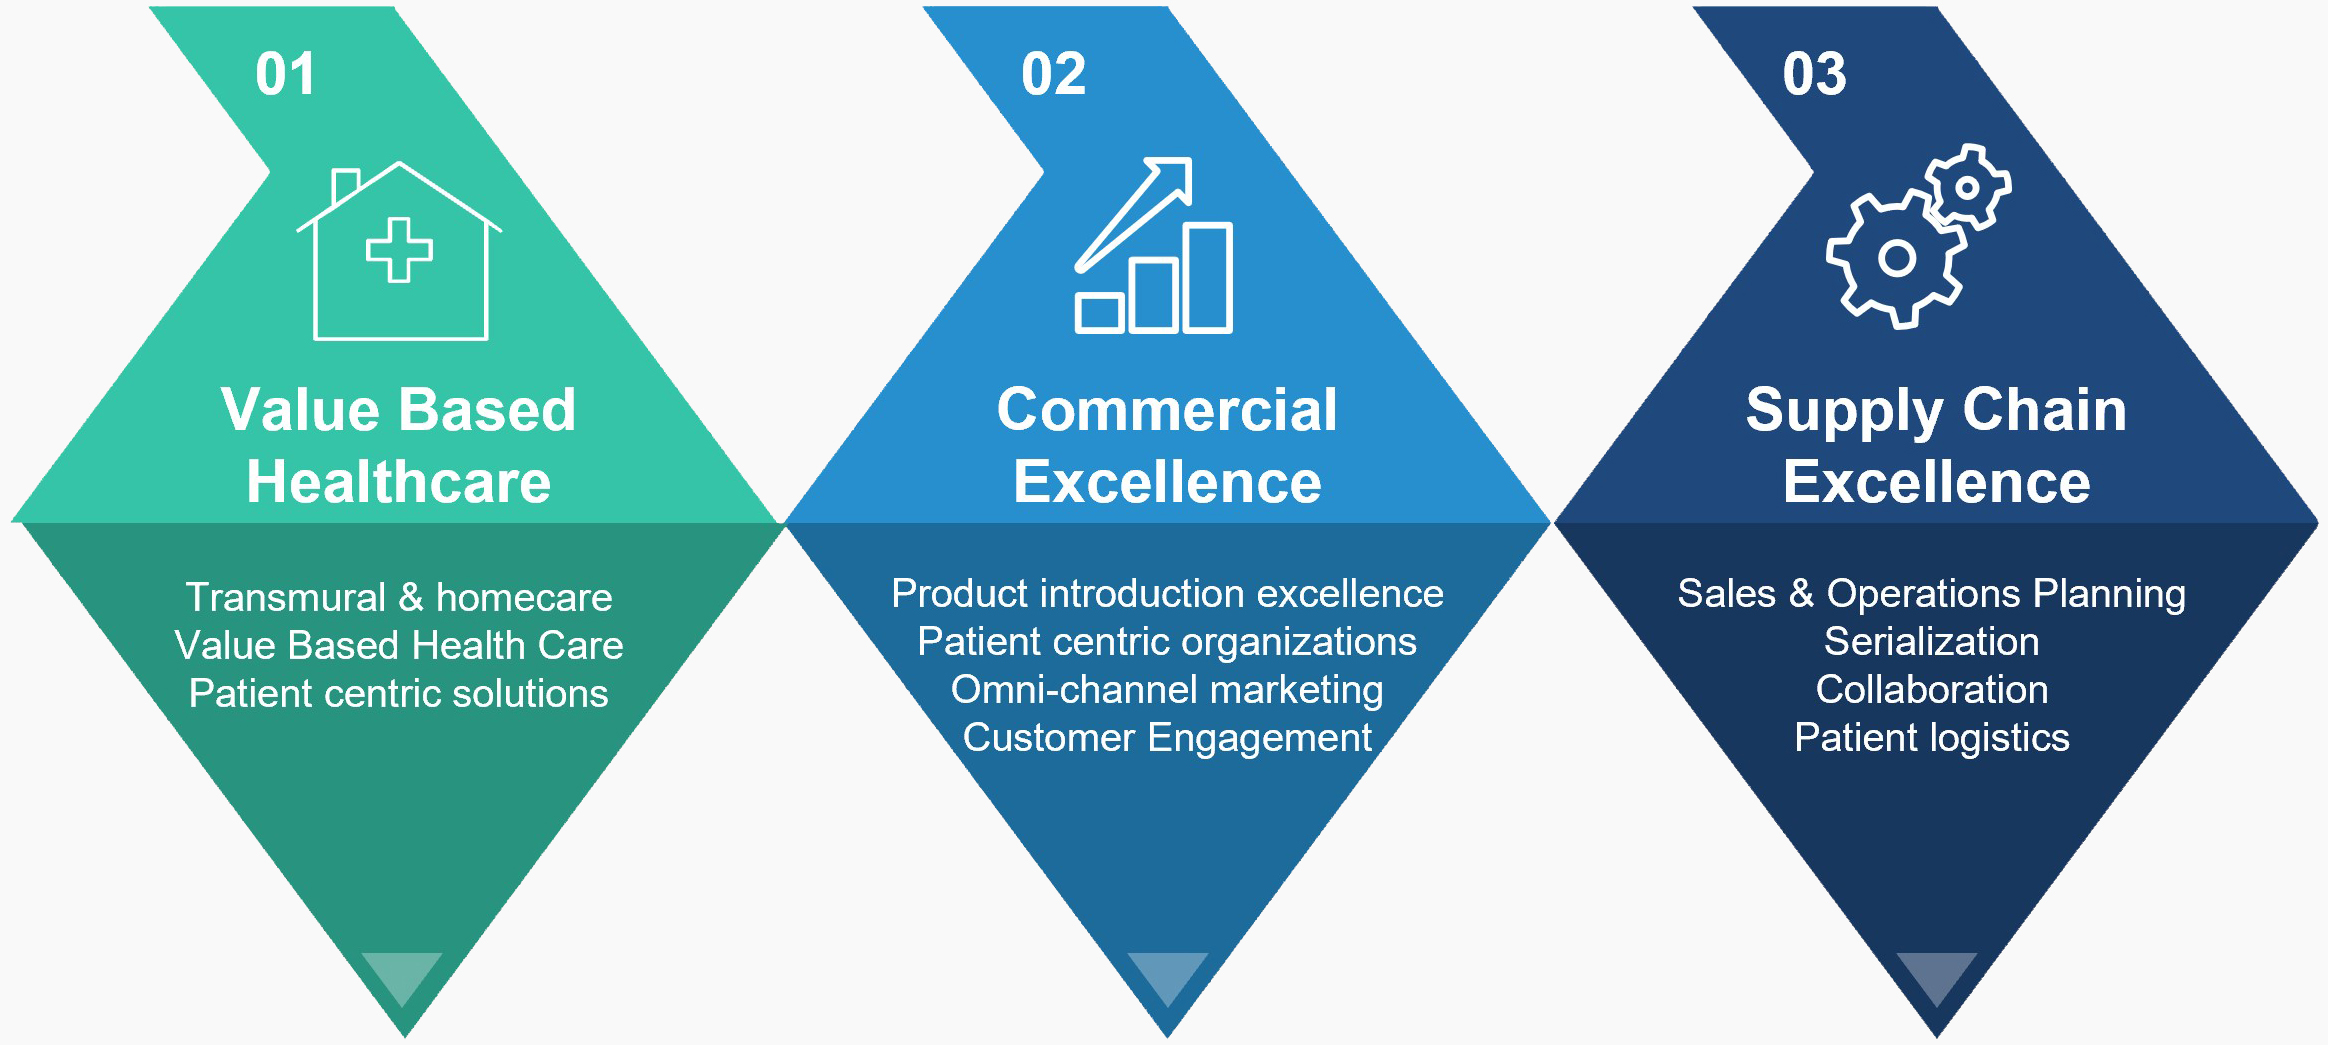 VBHC-Commercial-Excellence-Supply-Chain-Farma-Life-Sciences-Been-Management-Consulting-grijs